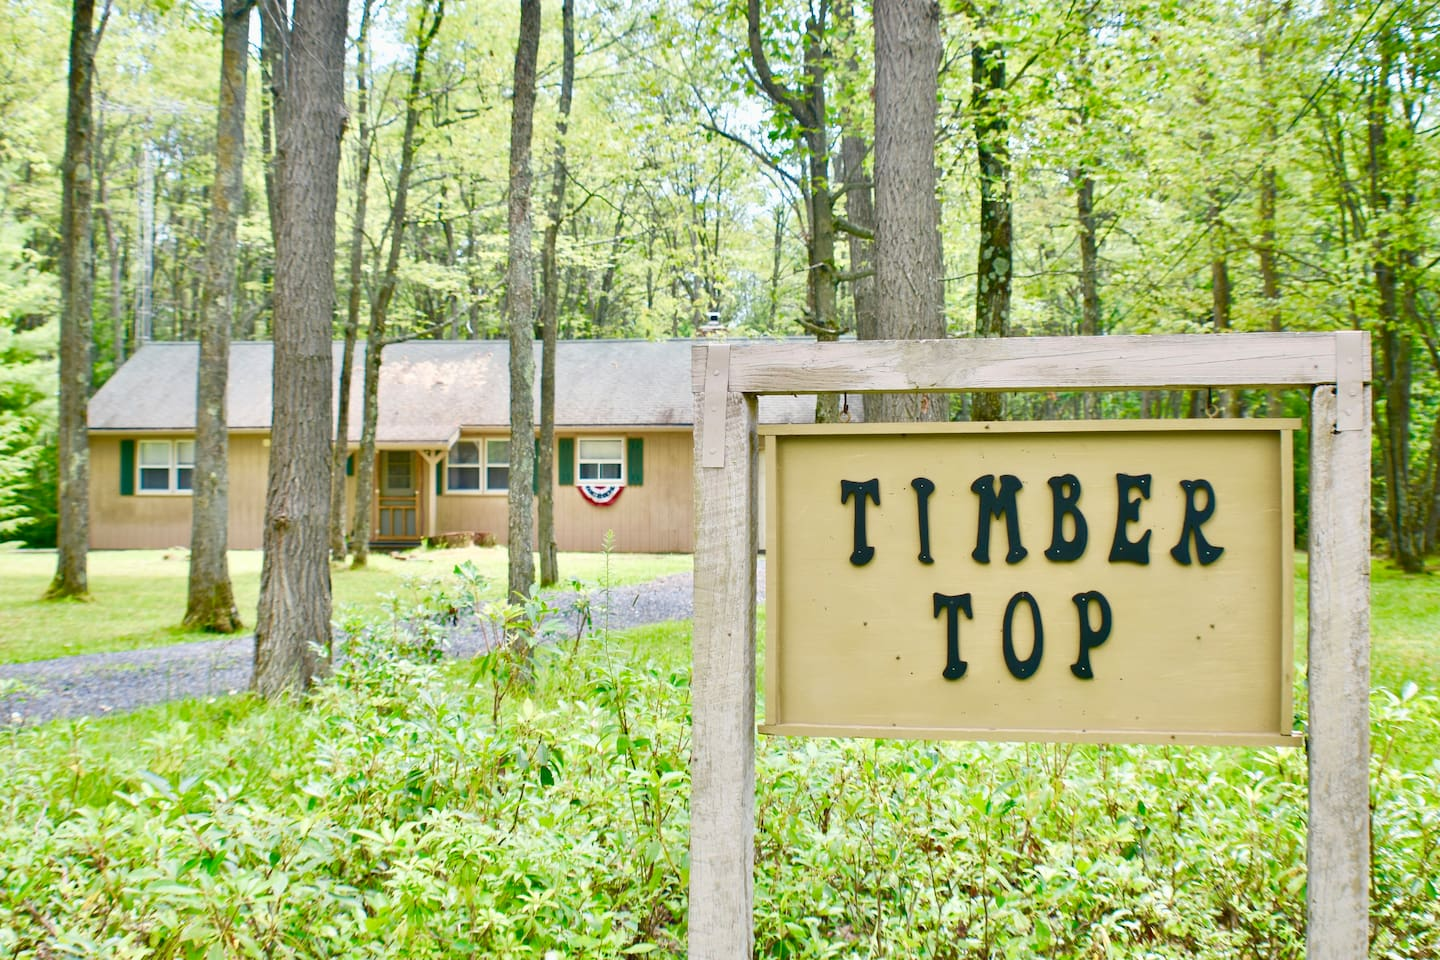 Timber Top! During summer time. Come walk or bike the nearby Pine Creek Rails to Trails.  Simply enjoy the beauty mother nature has to offer.